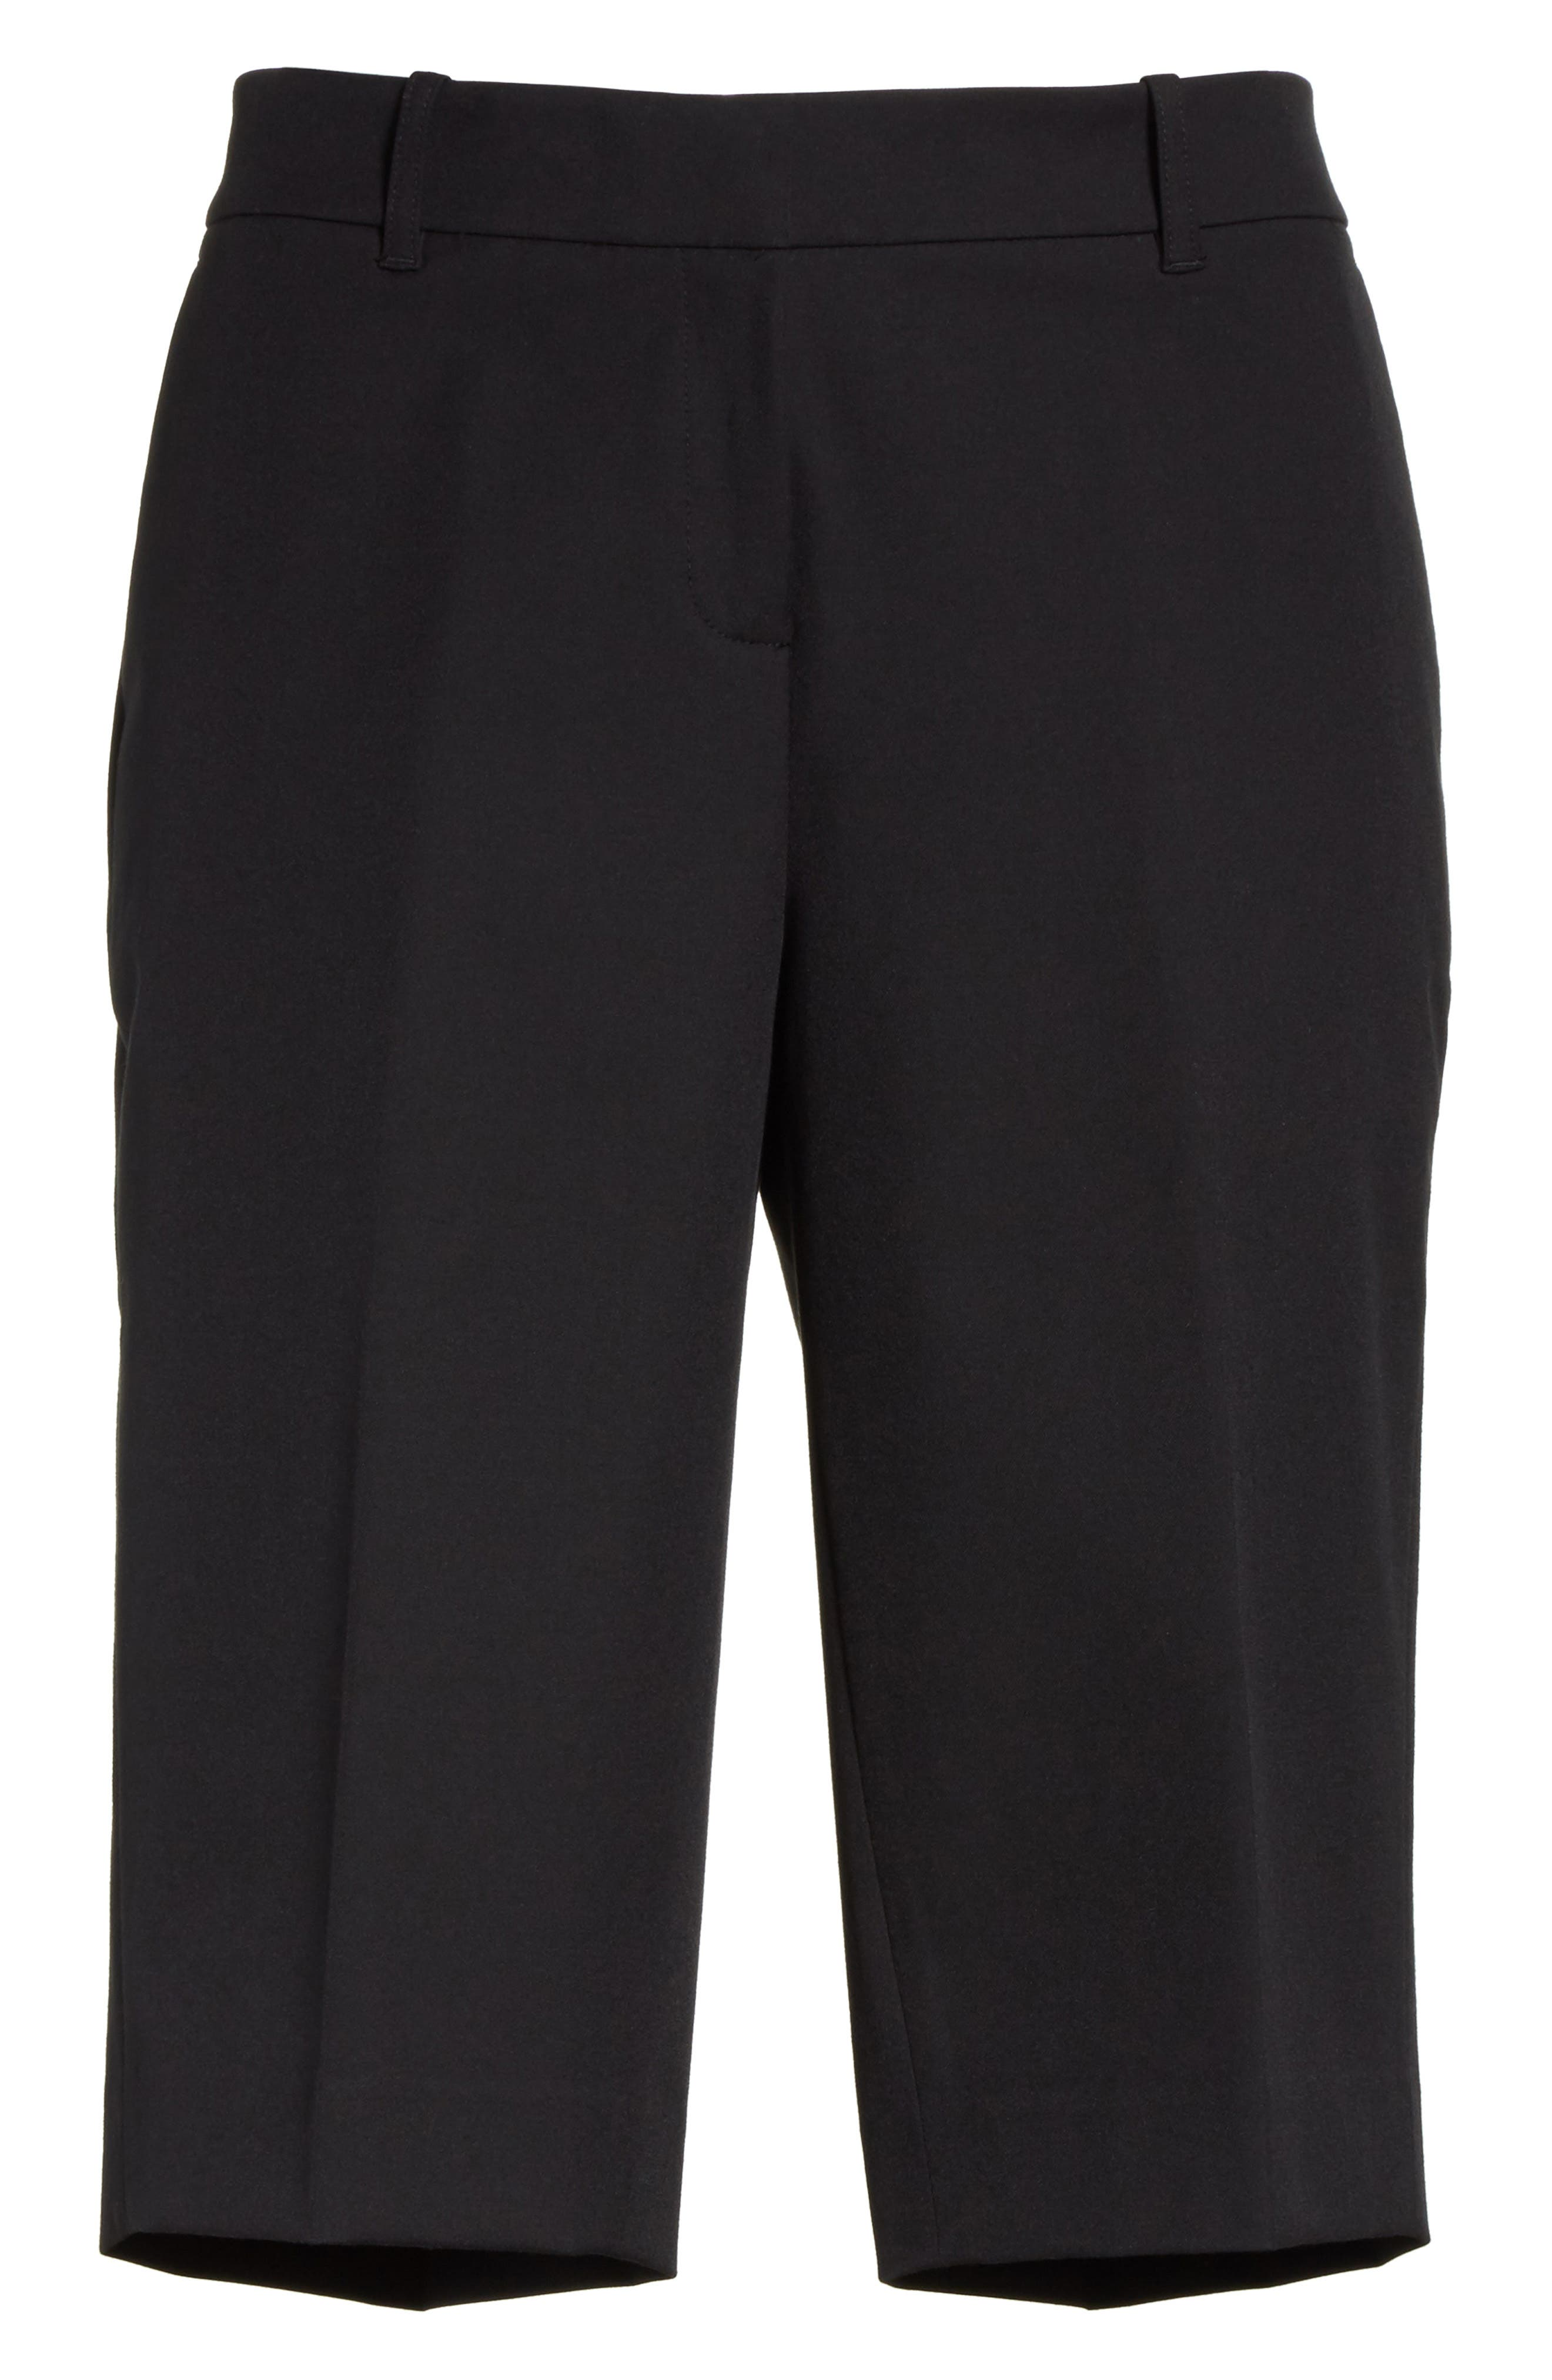 Manhattan Bermuda Shorts,                             Alternate thumbnail 6, color,                             Black